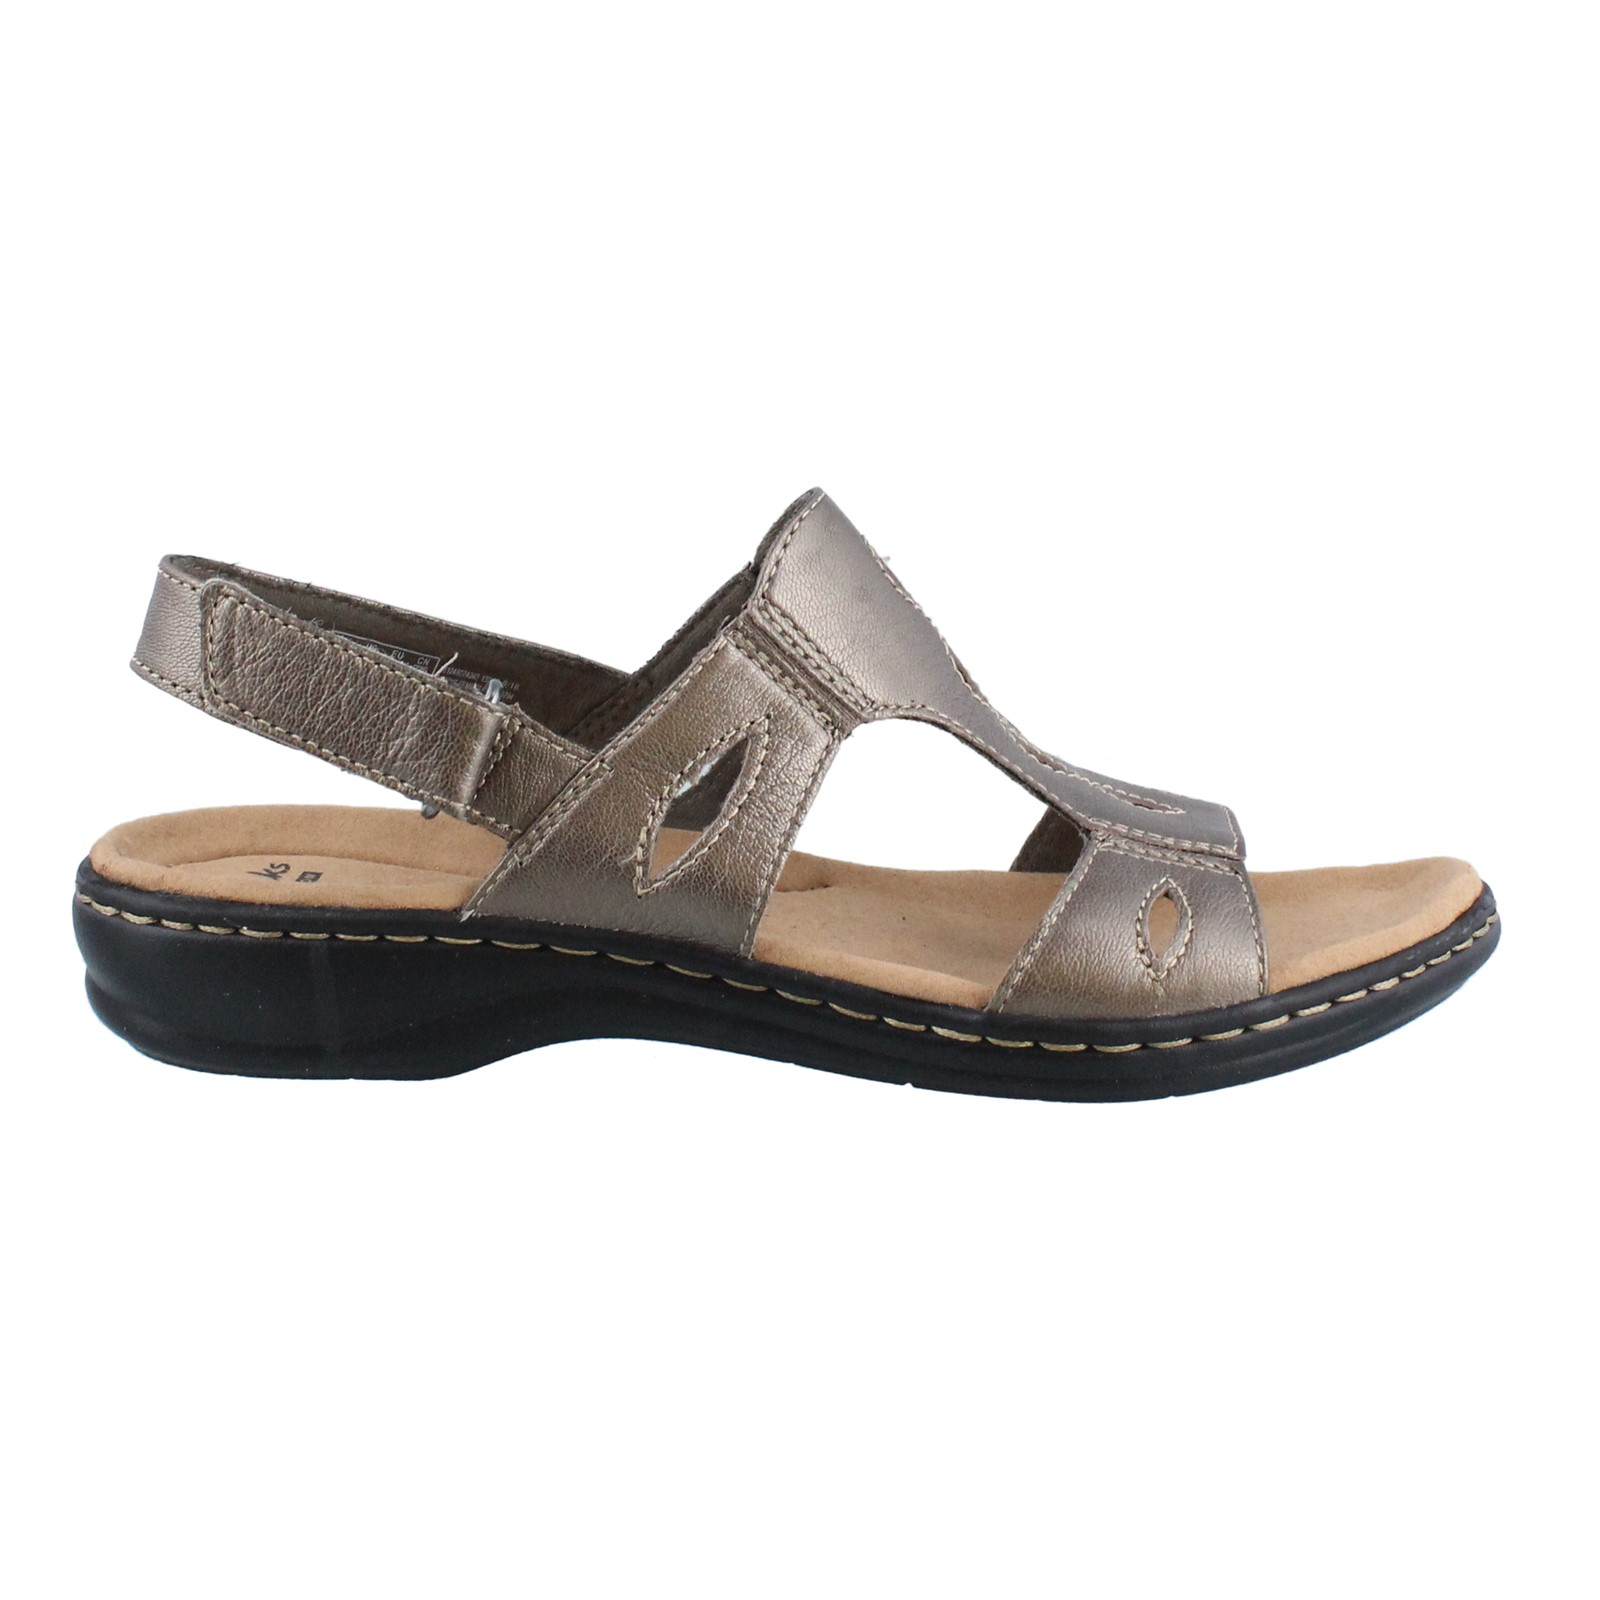 Women's Clarks, Leisa Lakelyn Sandals